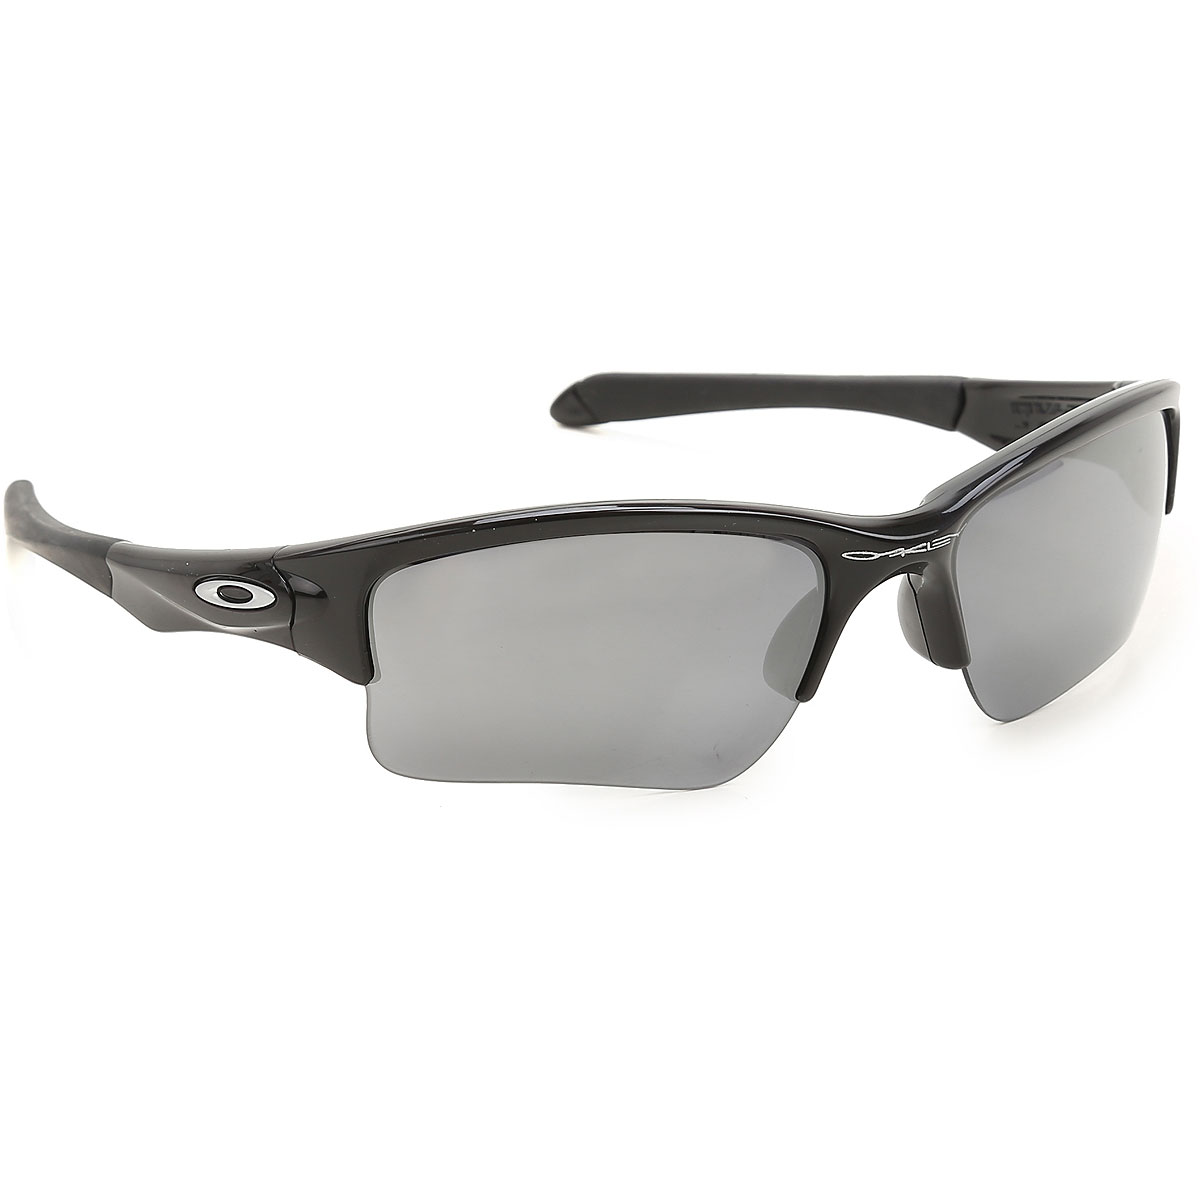 Image of Oakley Kids Sunglasses for Boys On Sale in Outlet, Black, 2017